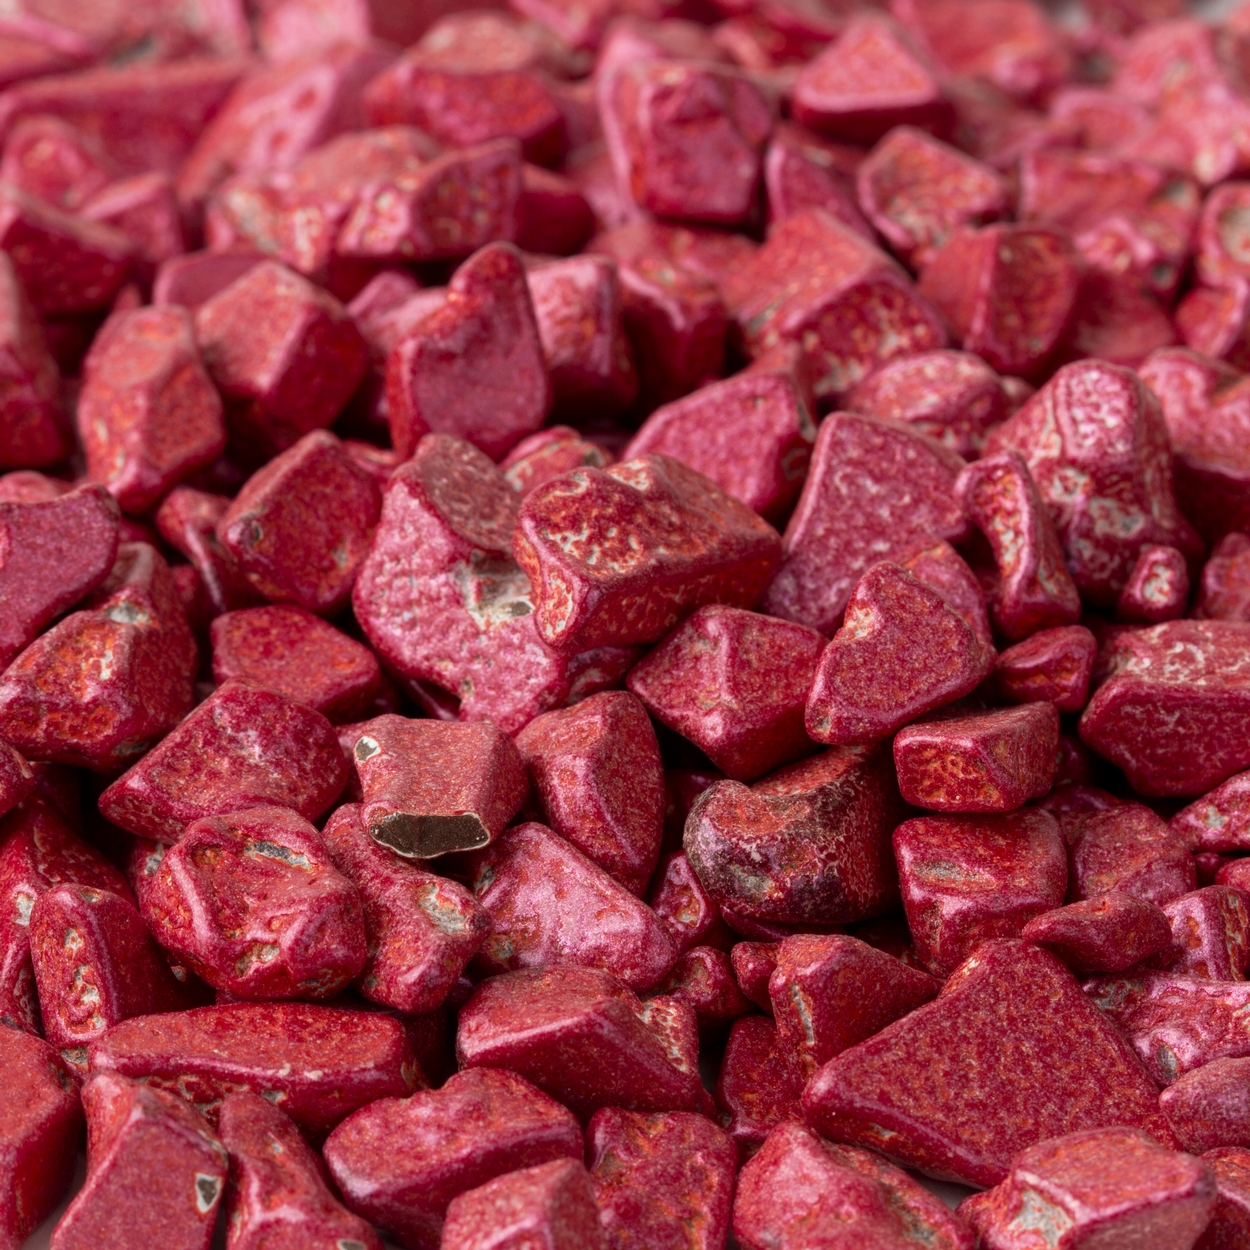 Red Ruby Chocolate Rocks Nuggets • Chocolate Candy Delights • Bulk ...